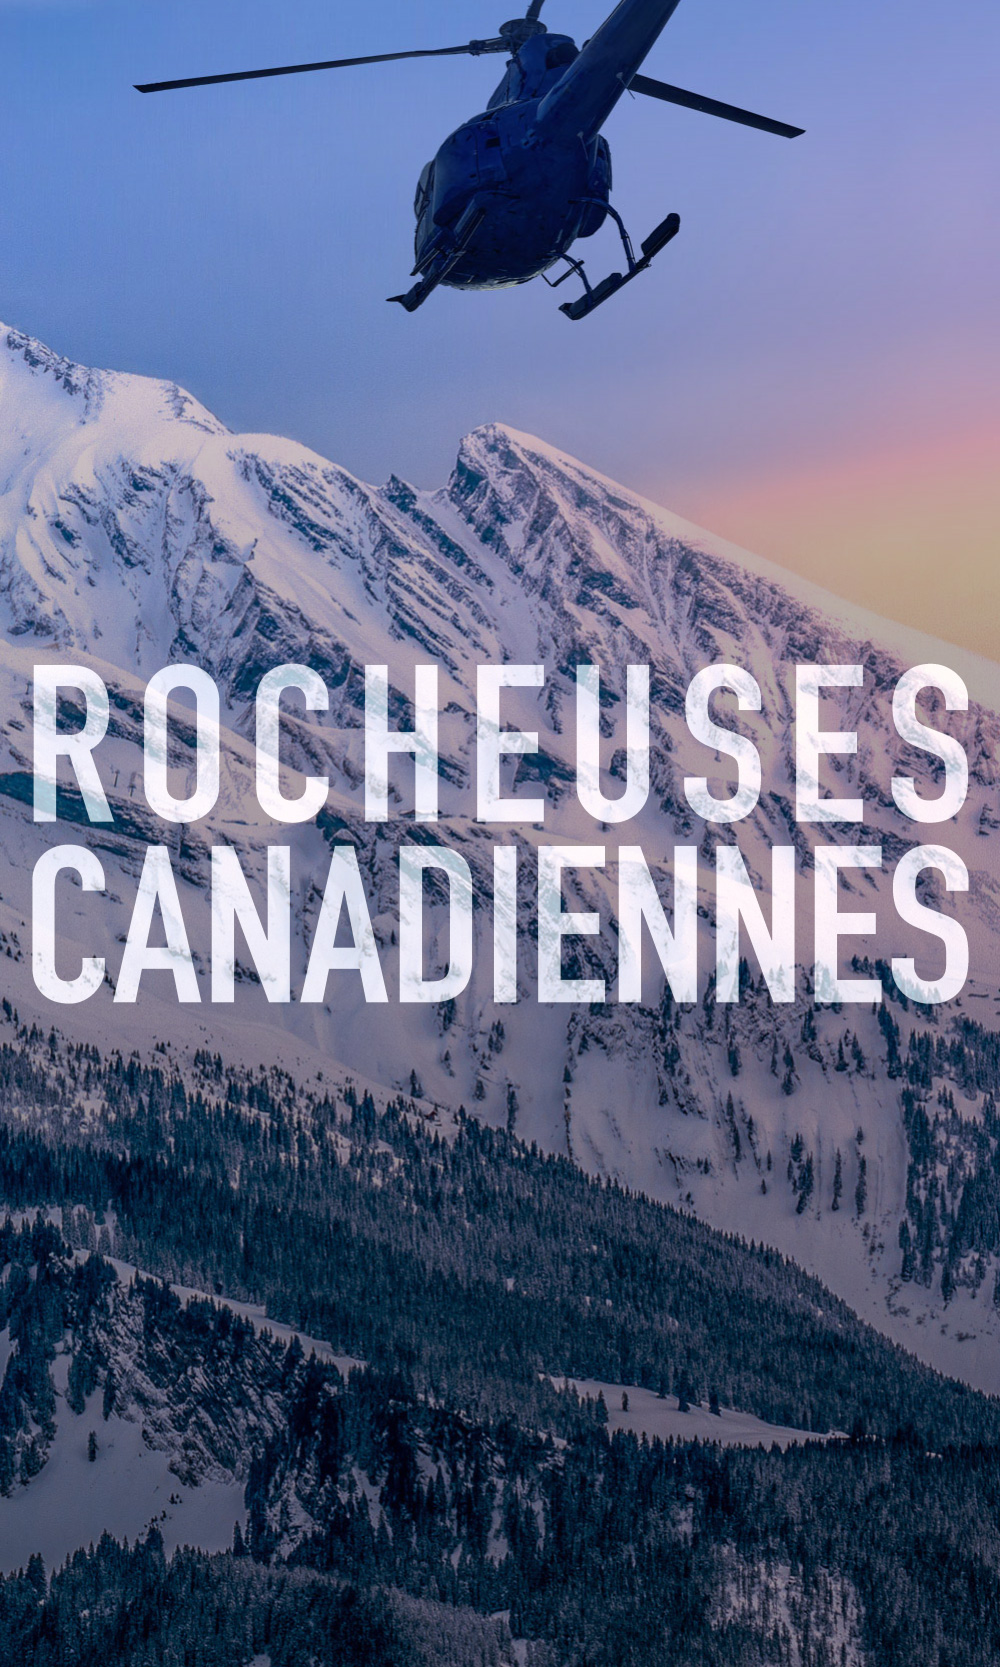 Rocheuses Candiennes